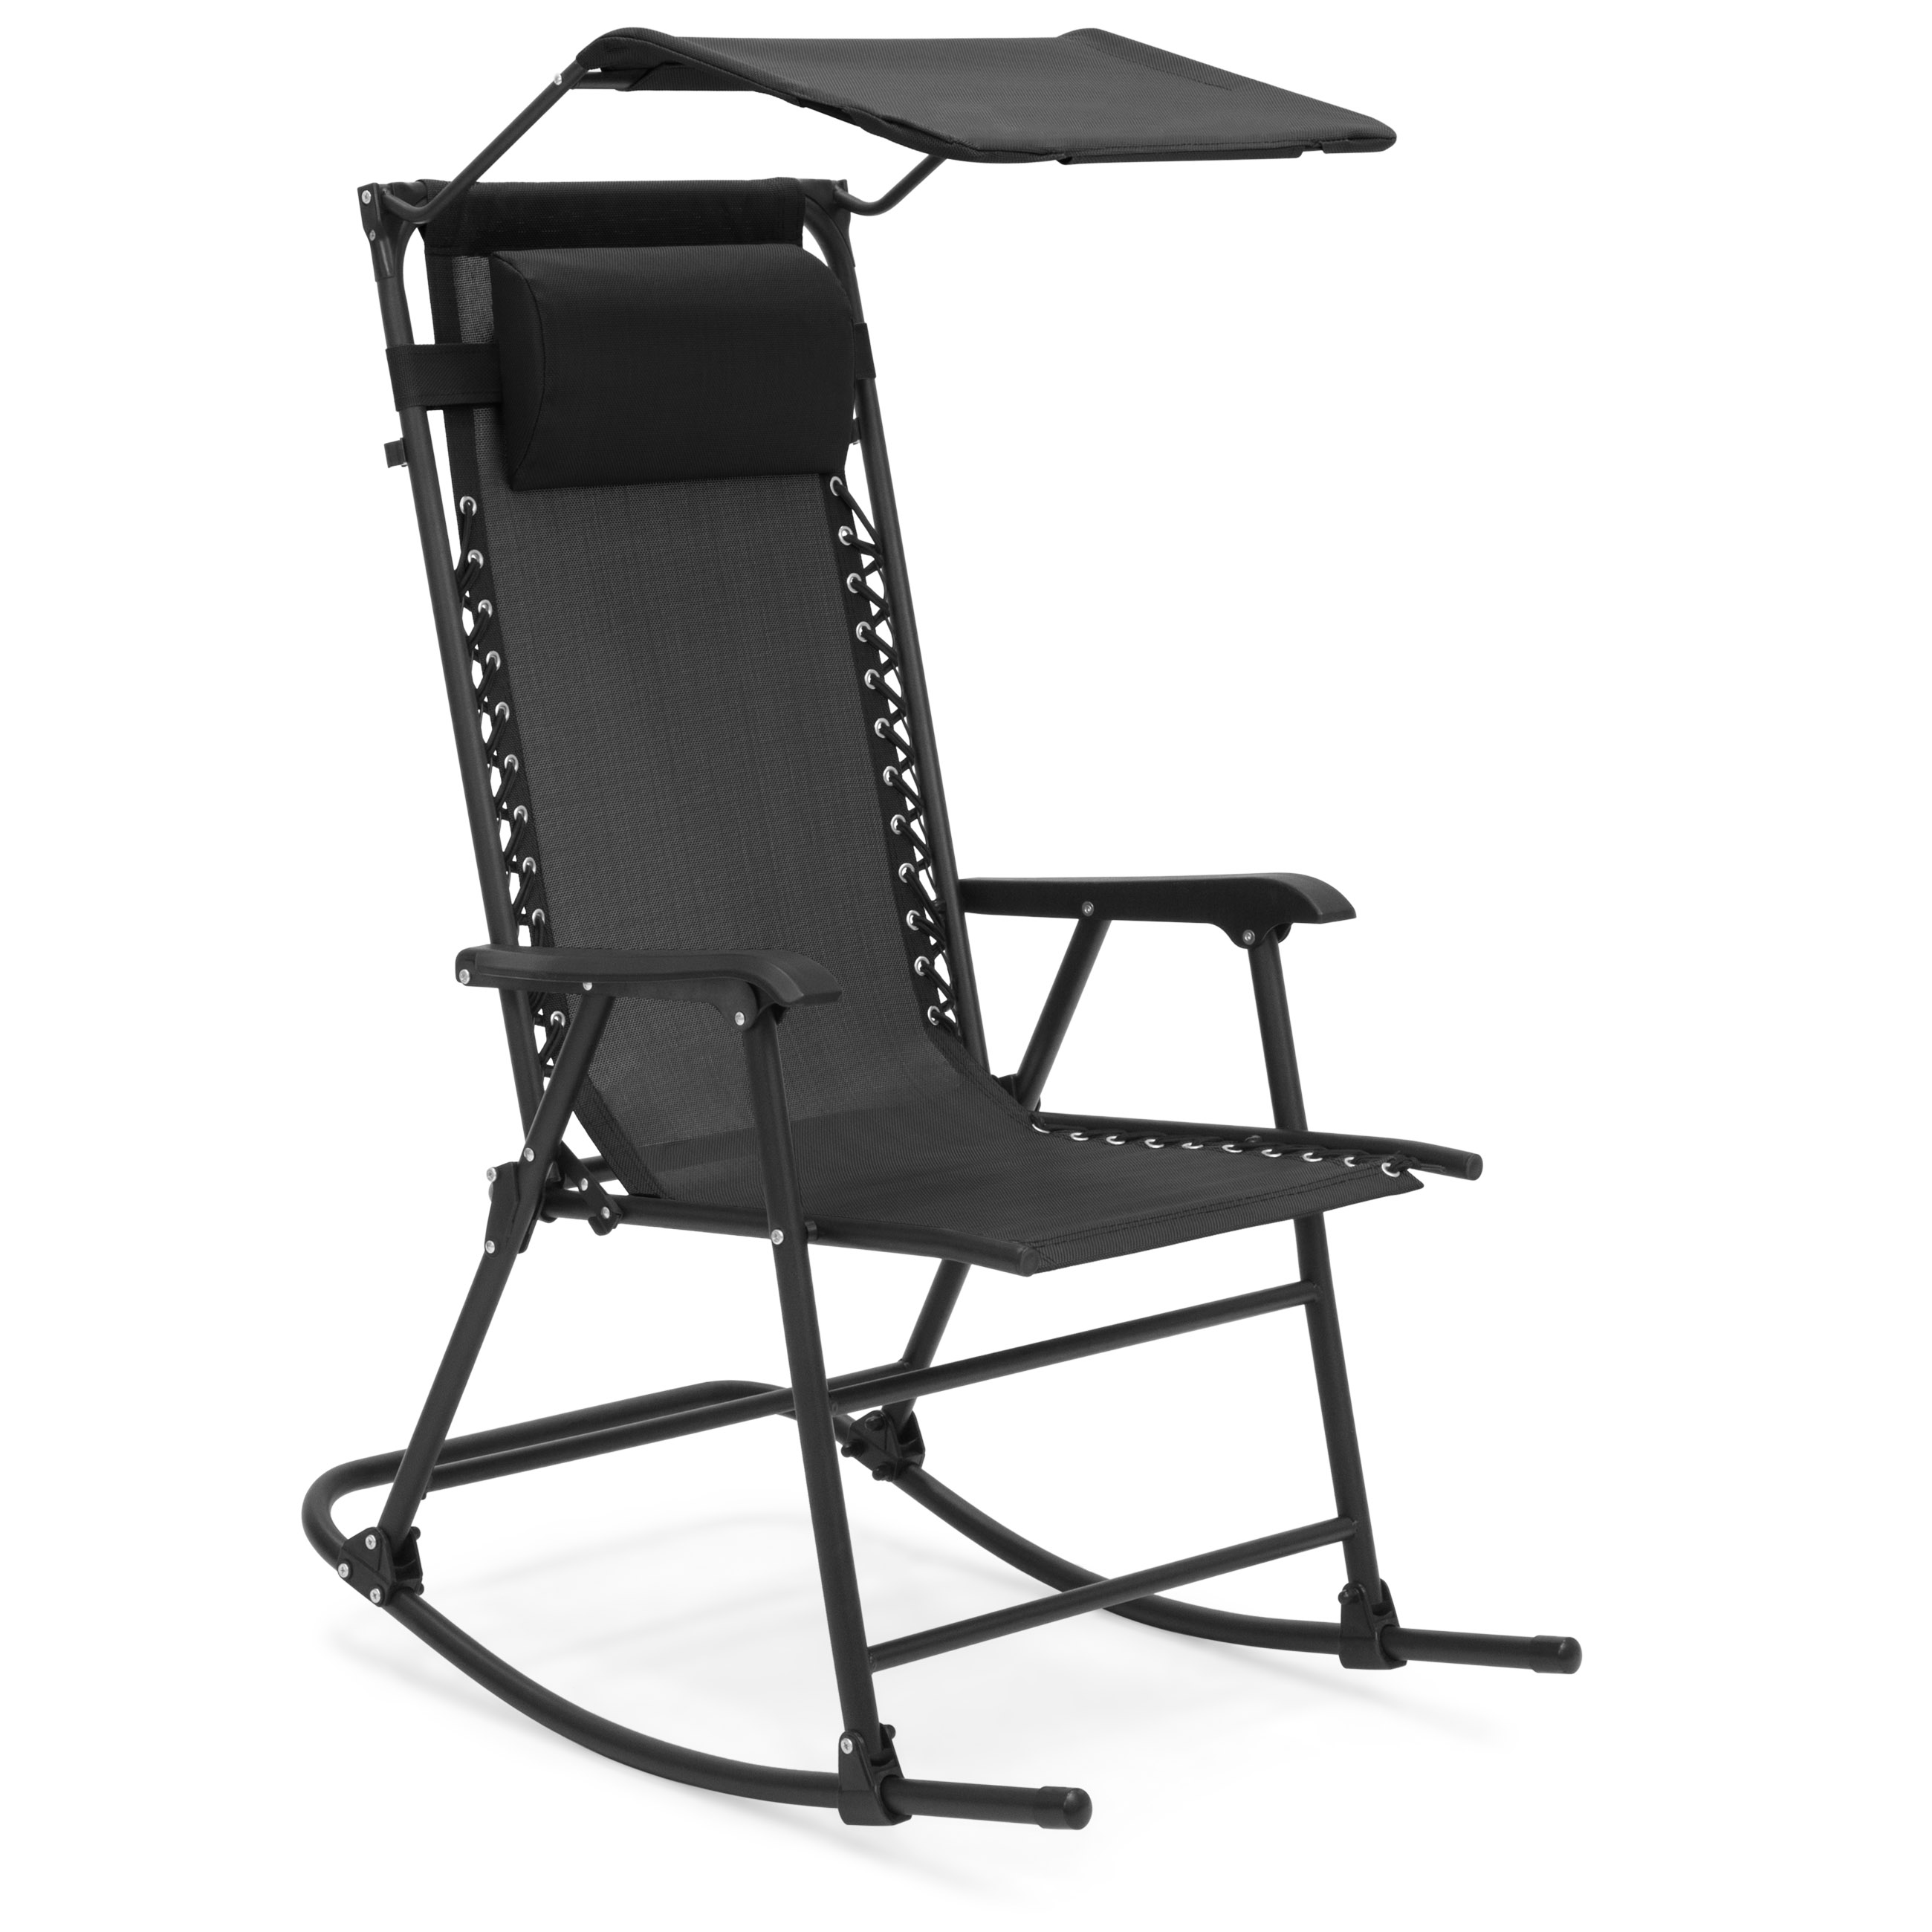 Best Choice Products Foldable Zero Gravity Rocking Patio Recliner Chair w  Sunshade Canopy Black by Best Choice Products